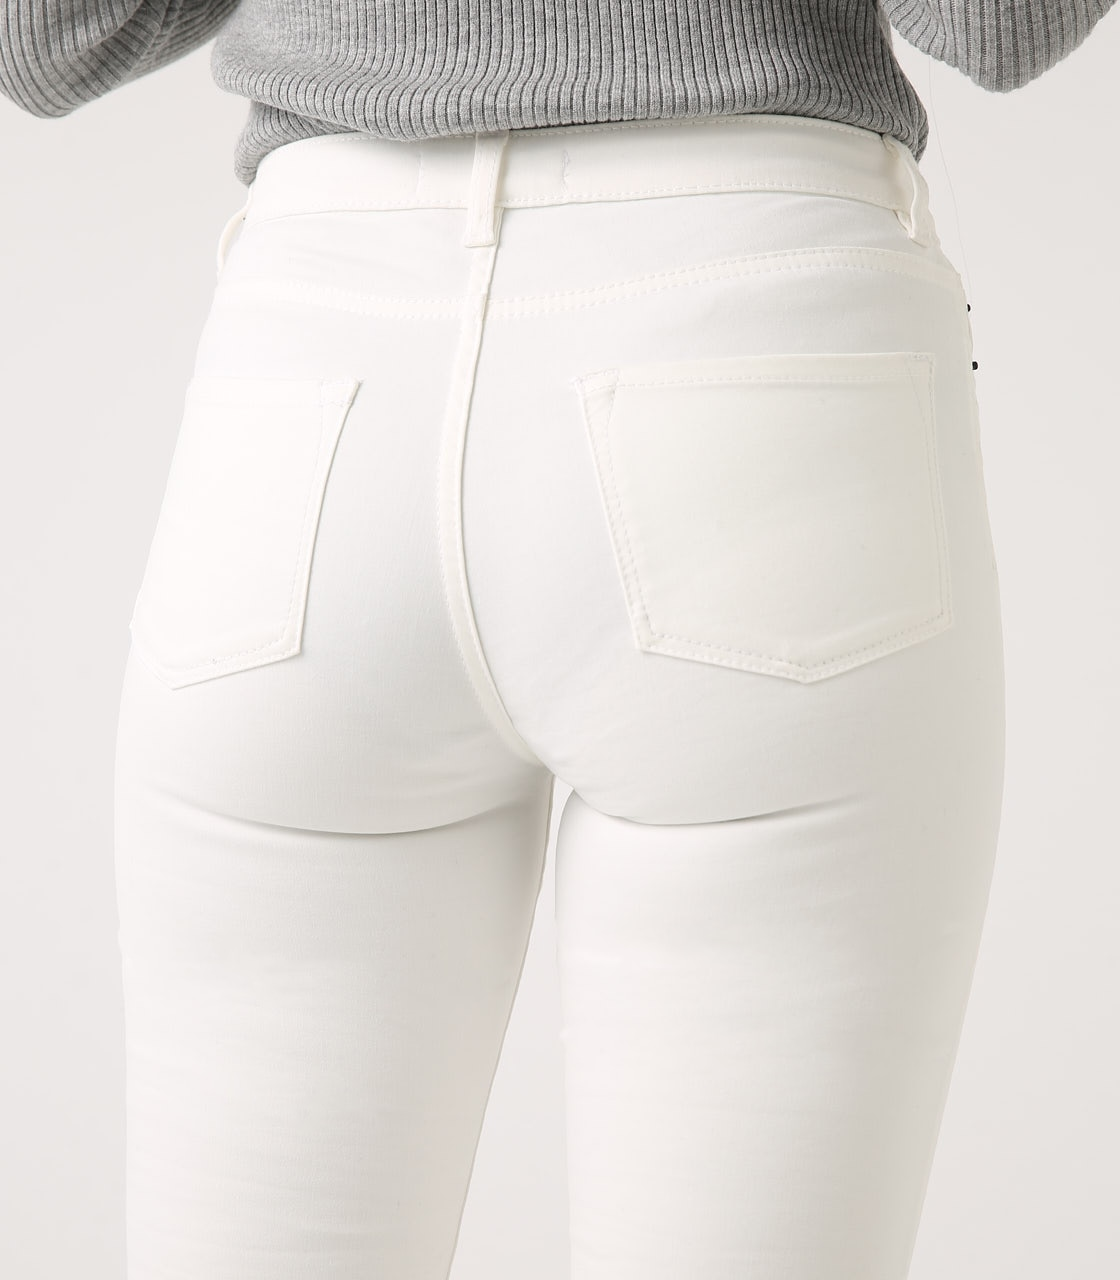 【AZUL BY MOUSSY】Color peach skinny 詳細画像 WHT 9